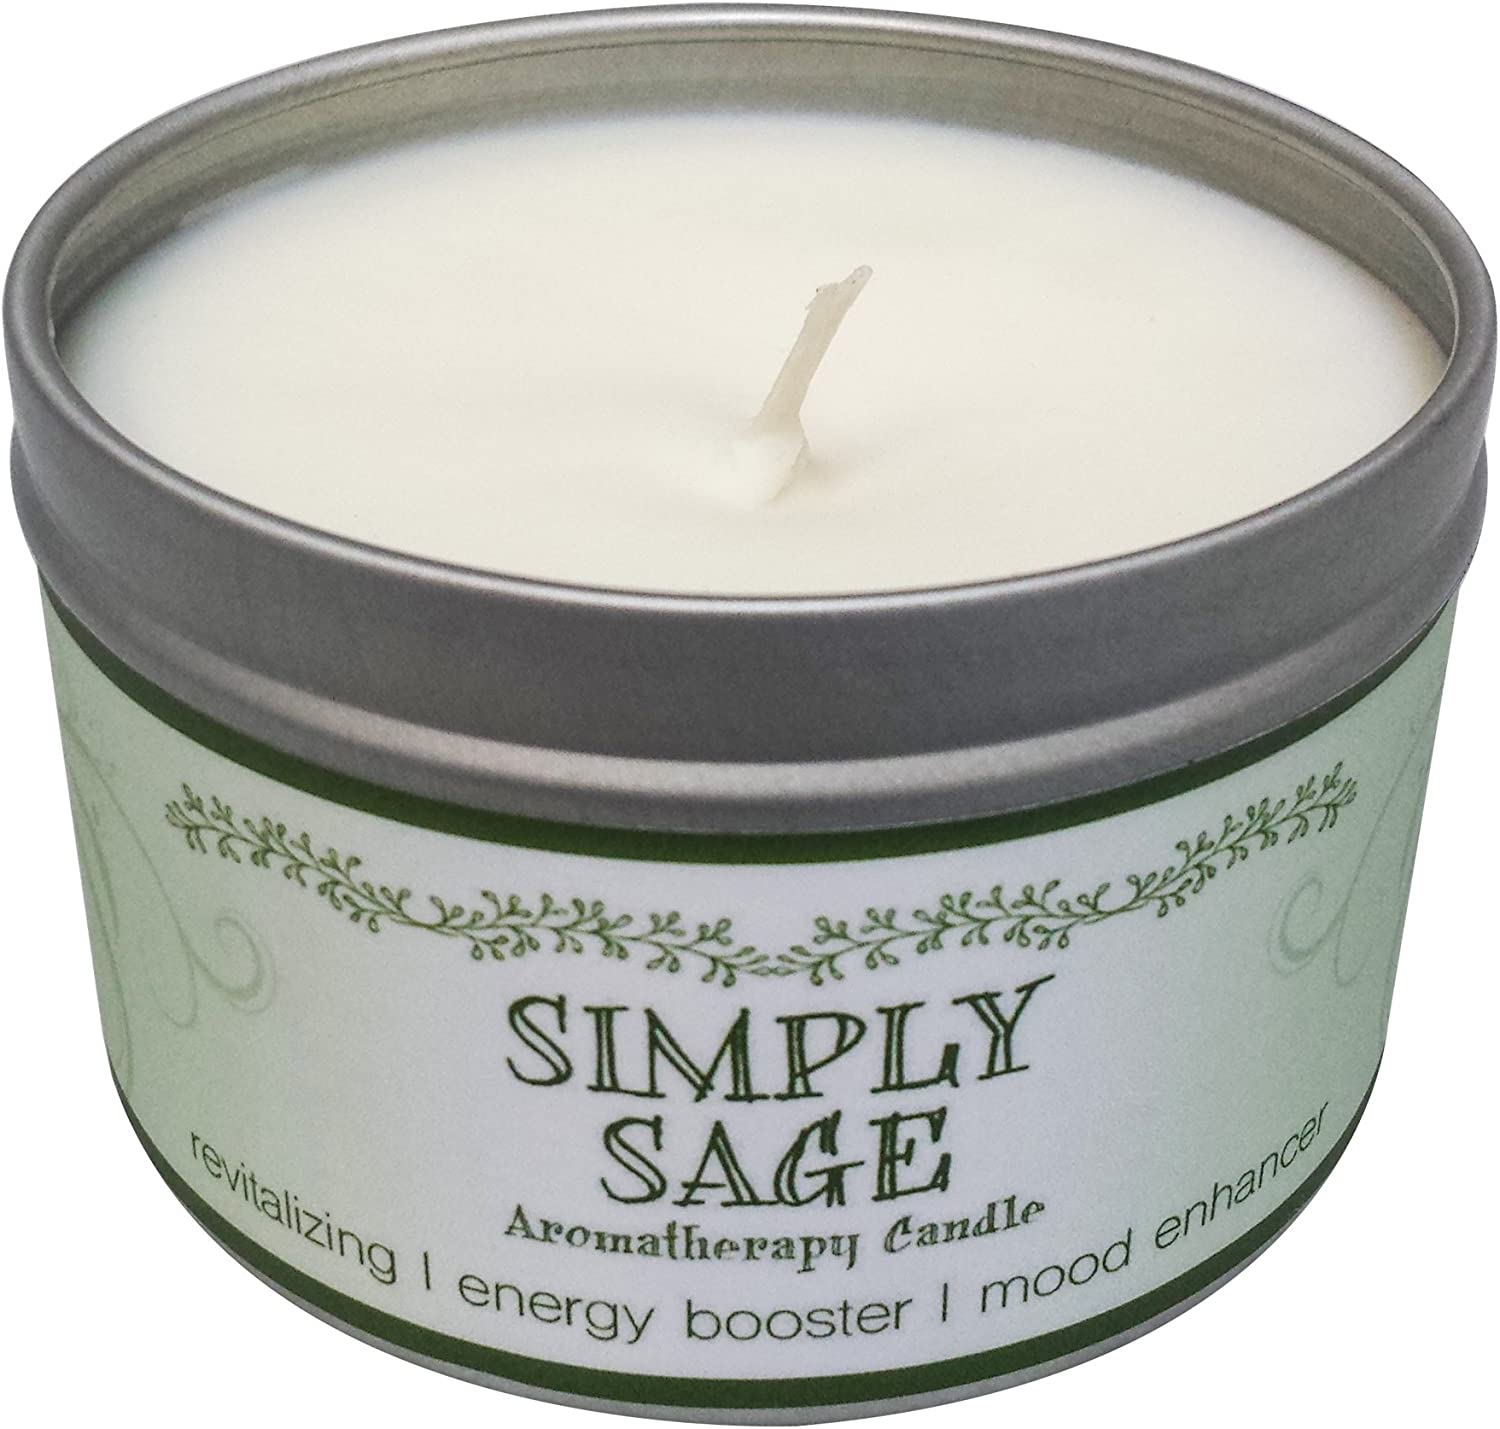 Our Own Candle Company Soy Wax Aromatherapy Candle, Simply Sage, 6.5 Ounce